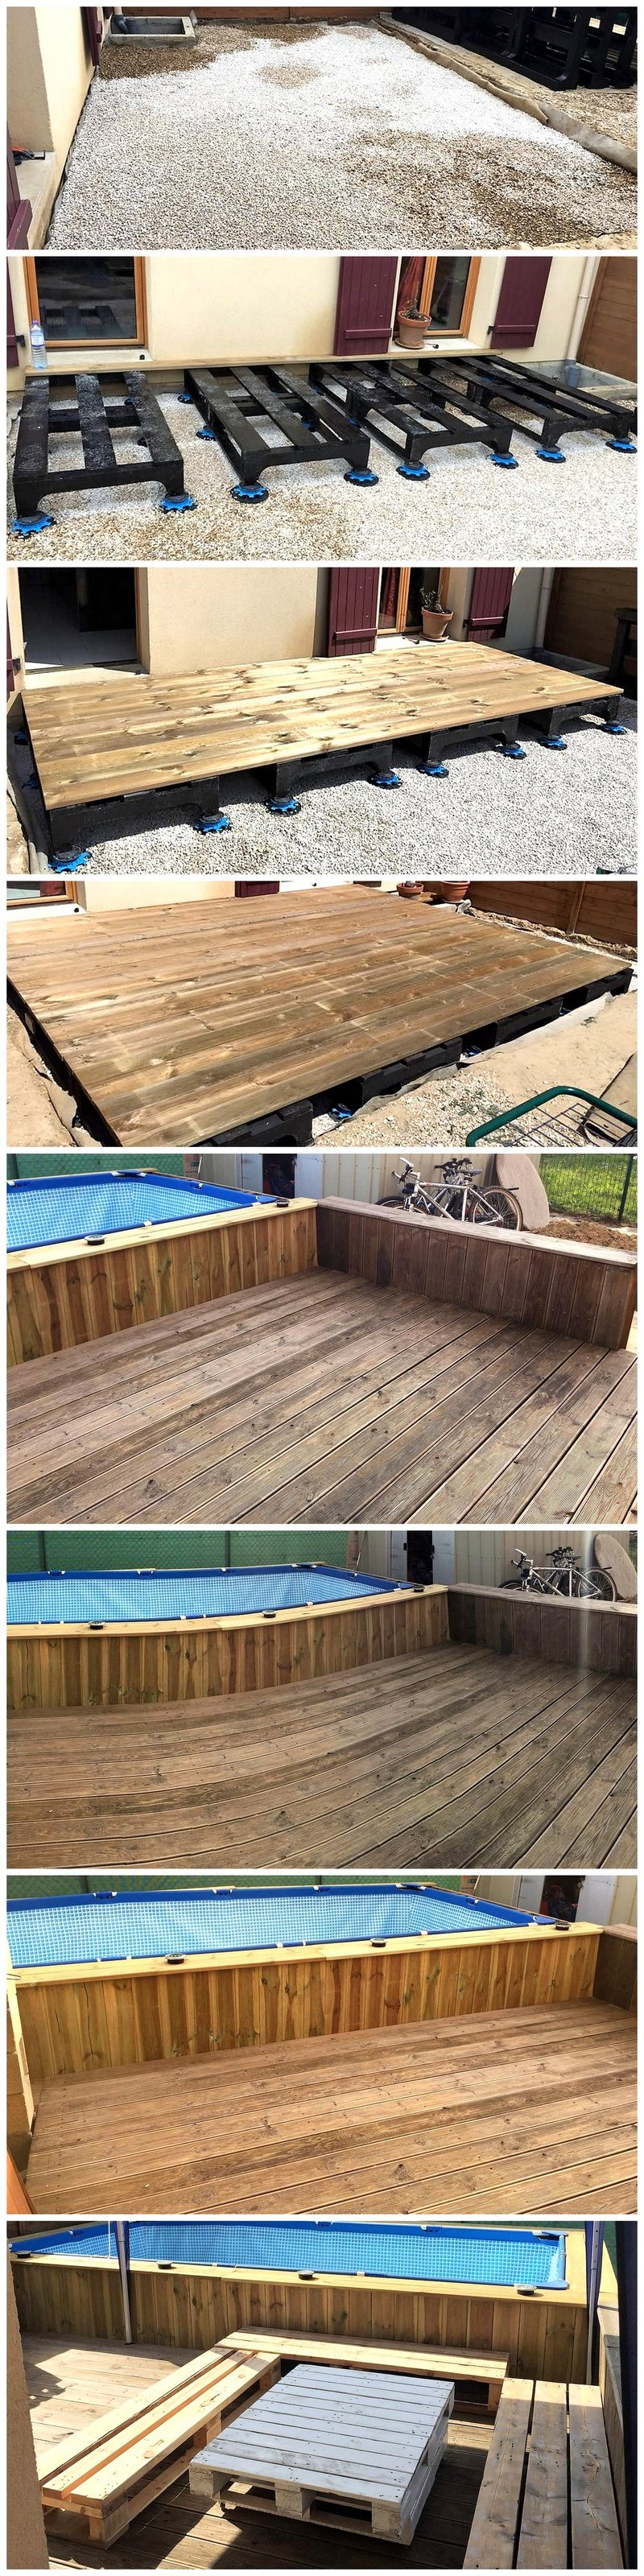 DIY Wood Pallet Pool Deck Plan